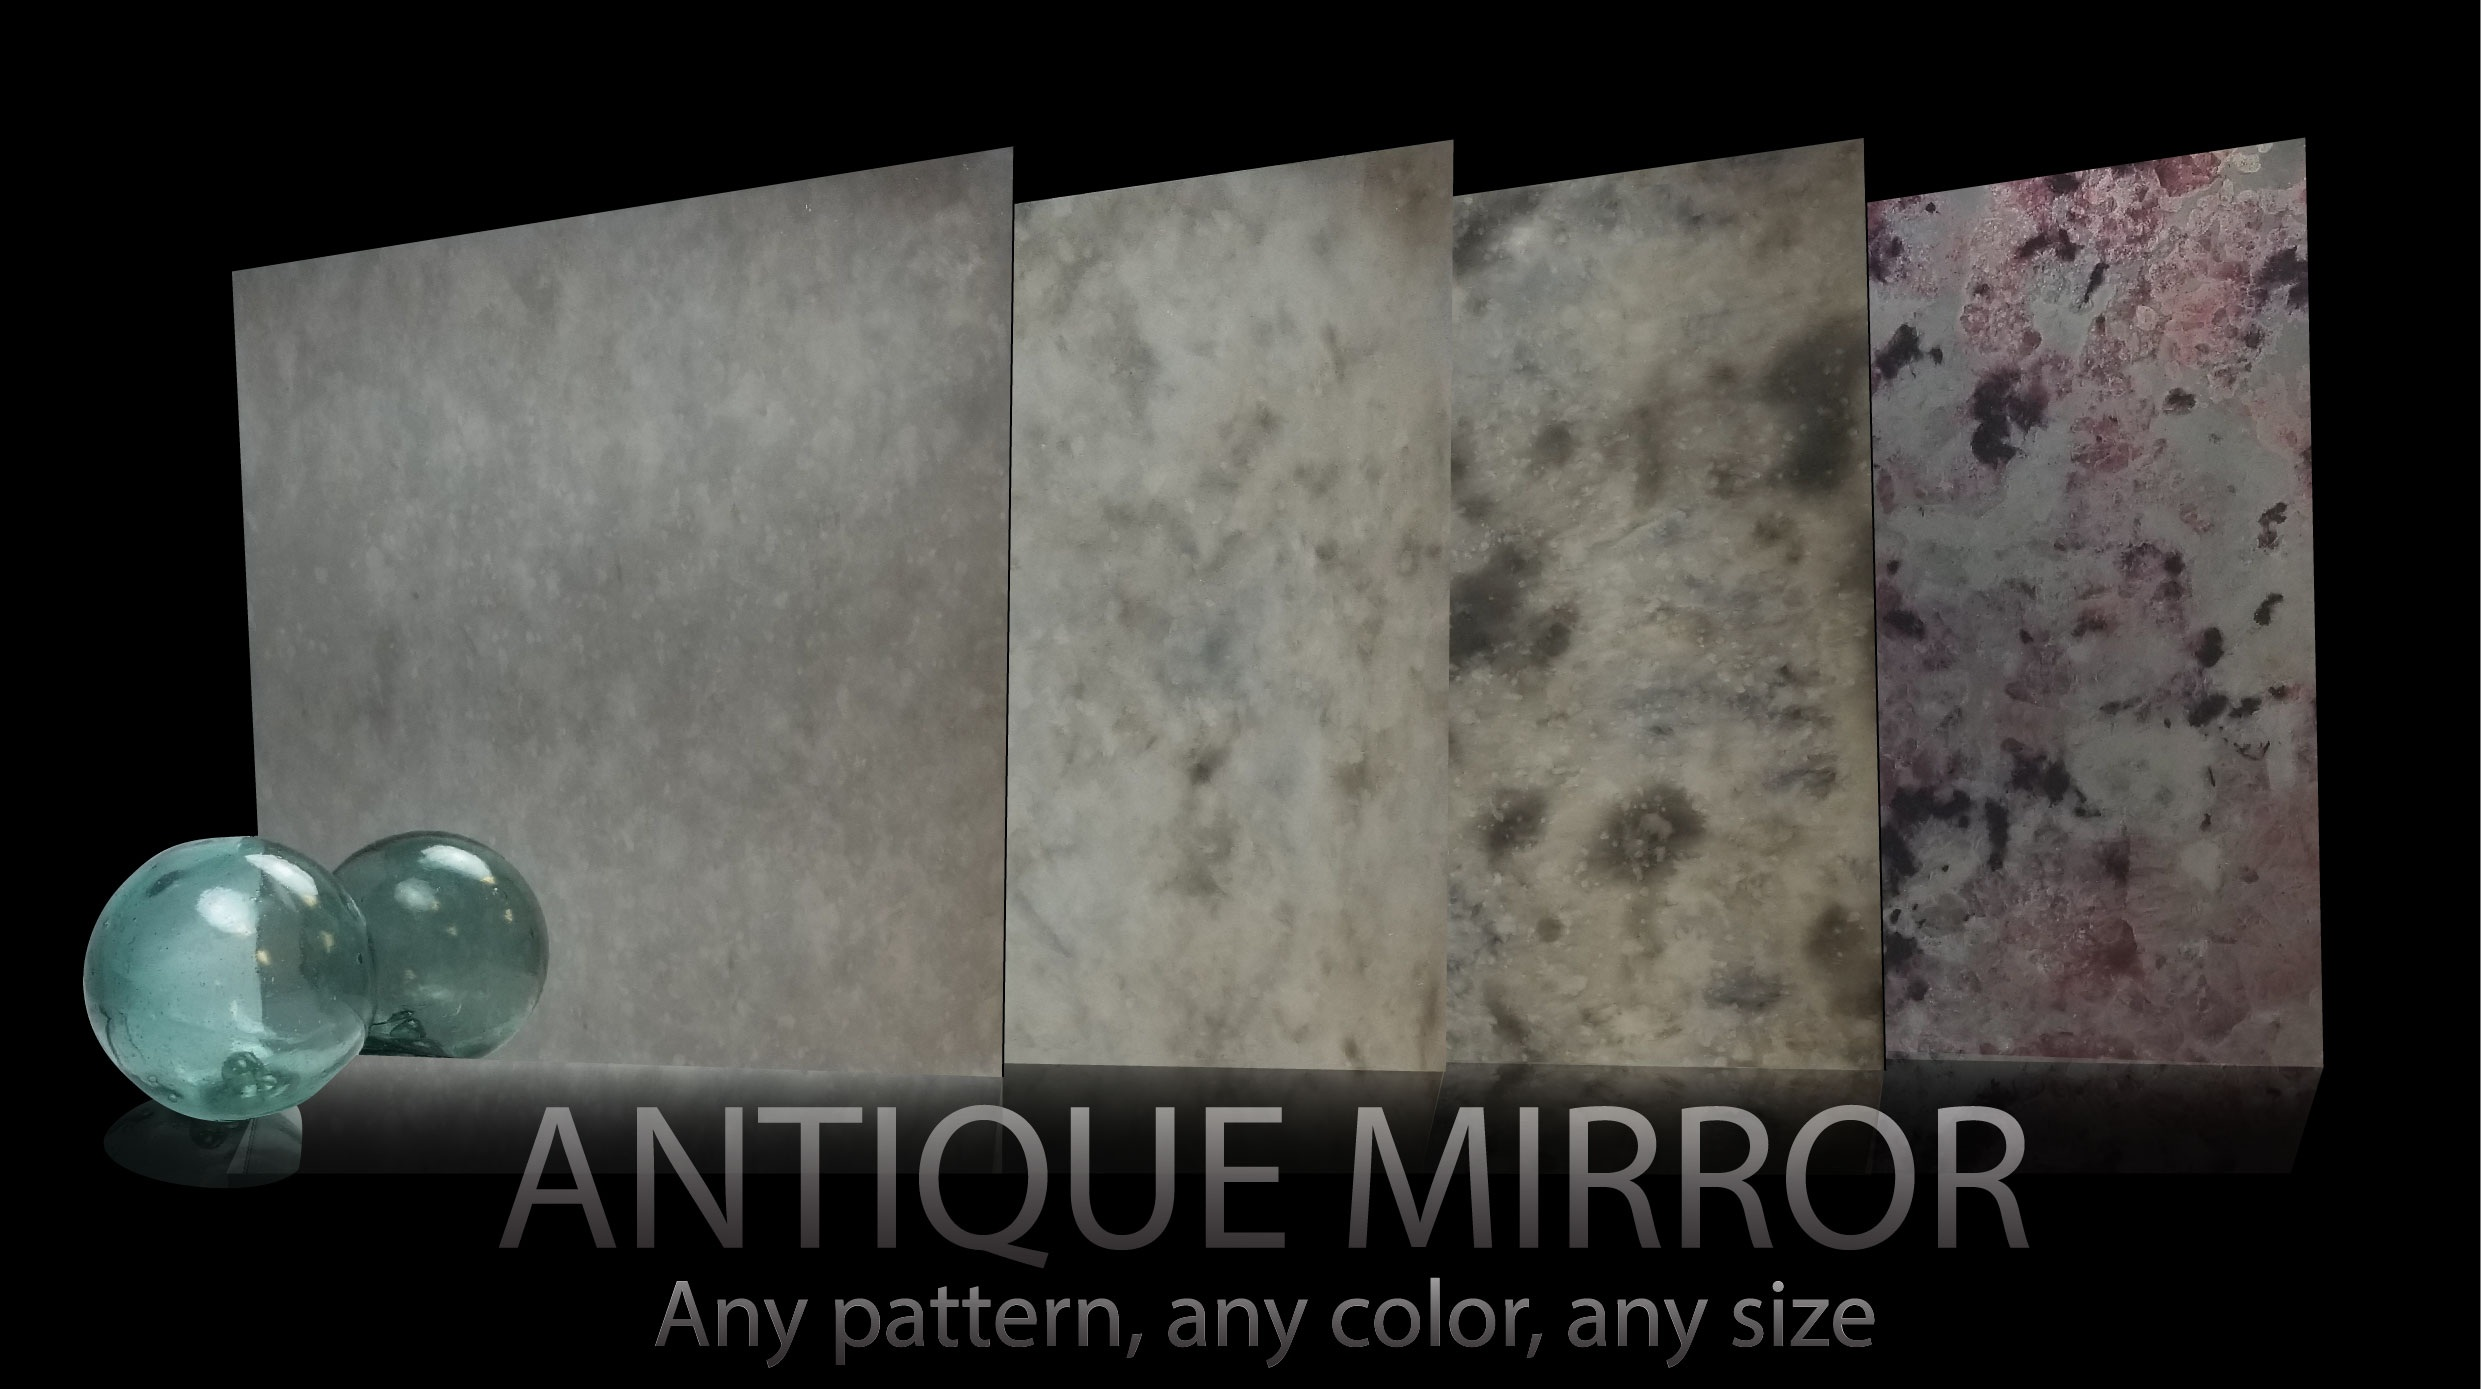 Antique MIrror Landing.jpg